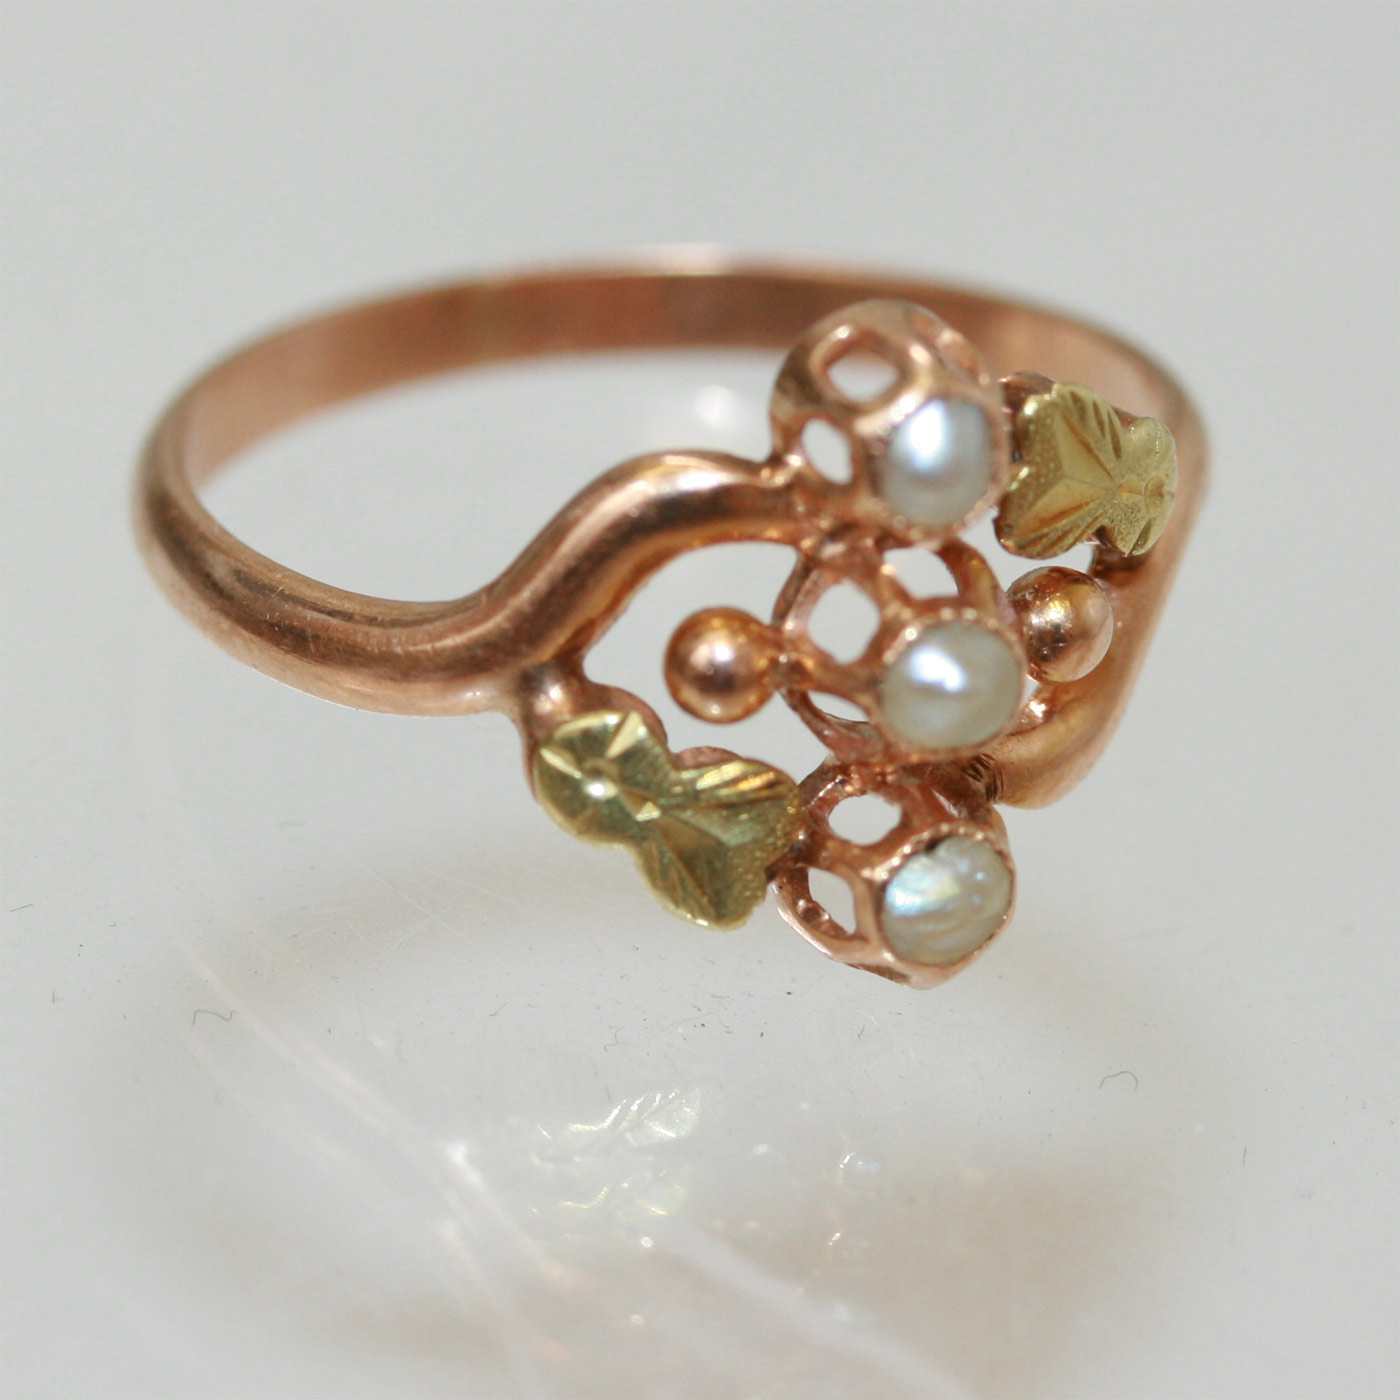 Buy Art Nouveau Ring With 3 Pearls Sold Items Sold Rings